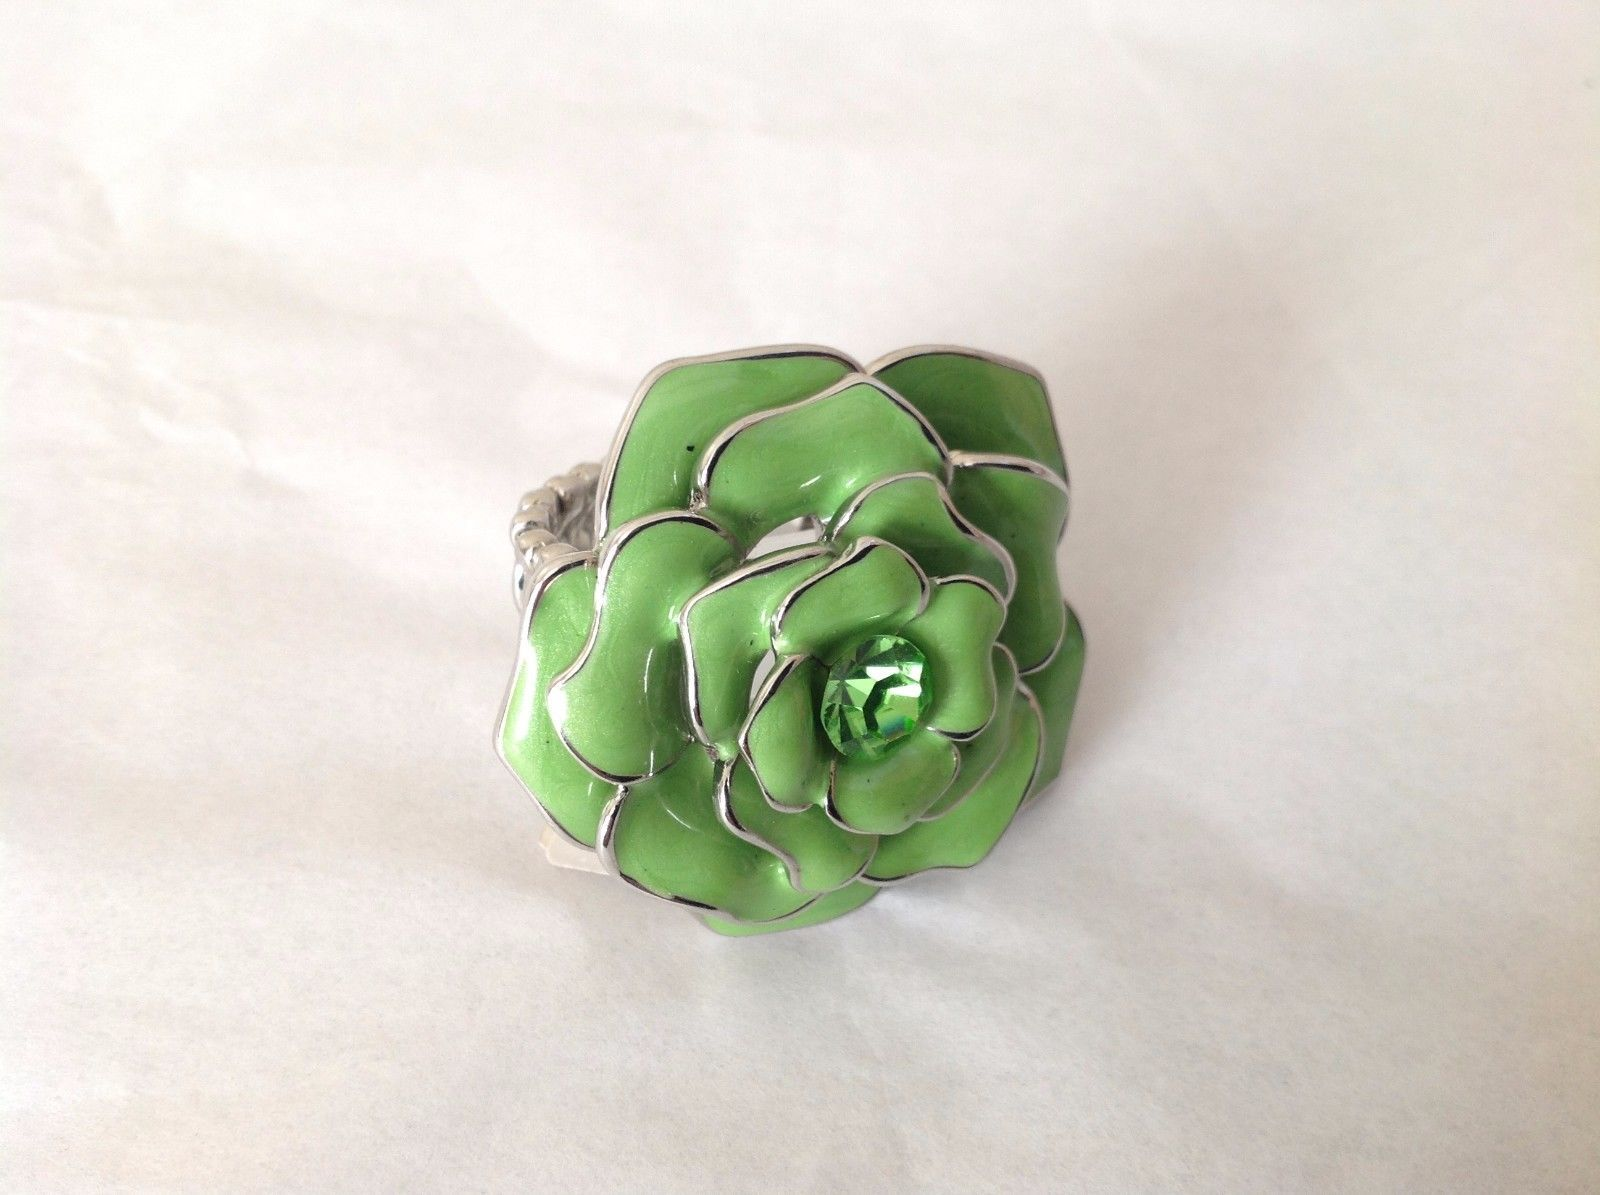 NEW Green Flower Ring Adjustable Elastic Band Enameled Metal Swarovski Element